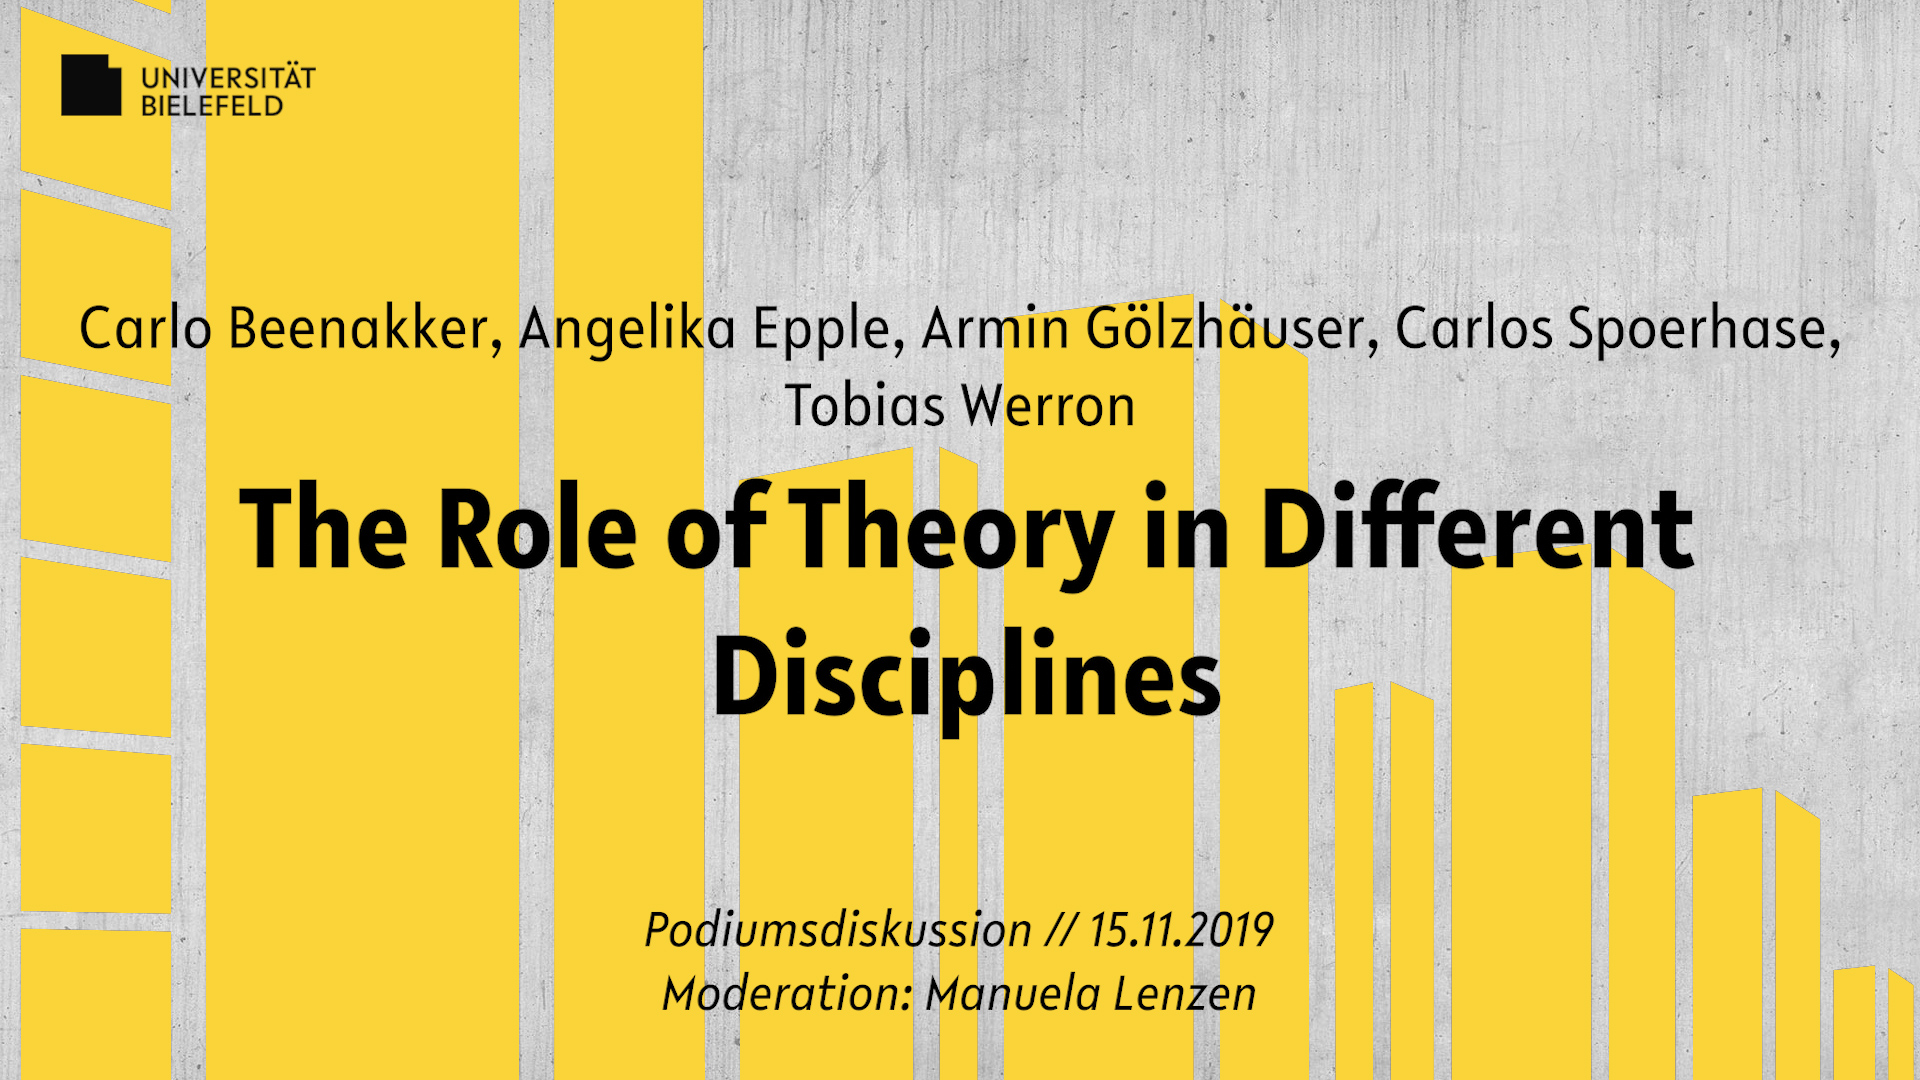 The Role of Theory in Different Disciplines